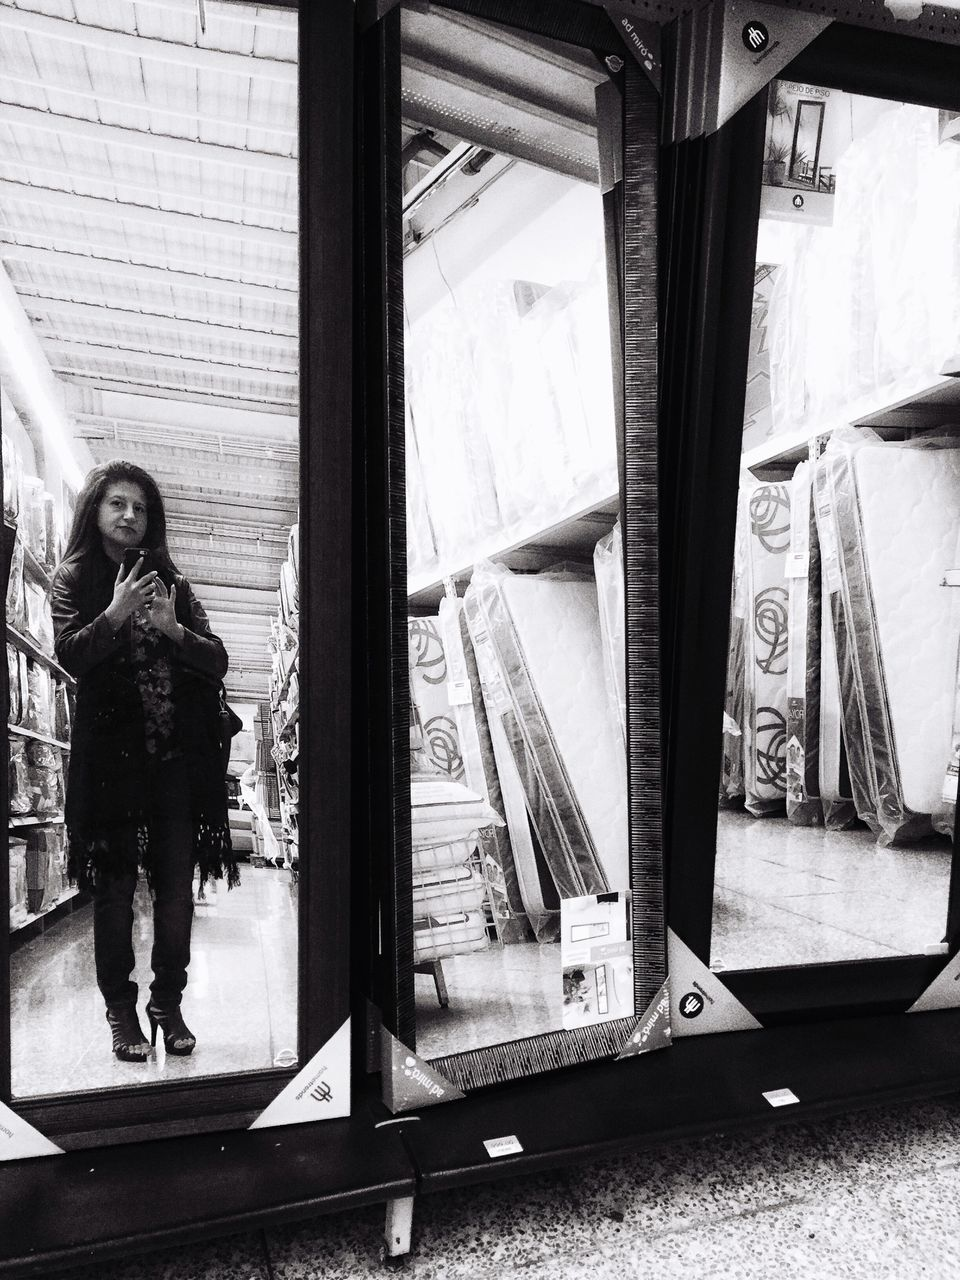 Reflection Of Woman Taking Selfie In Mirror At Departmental Store